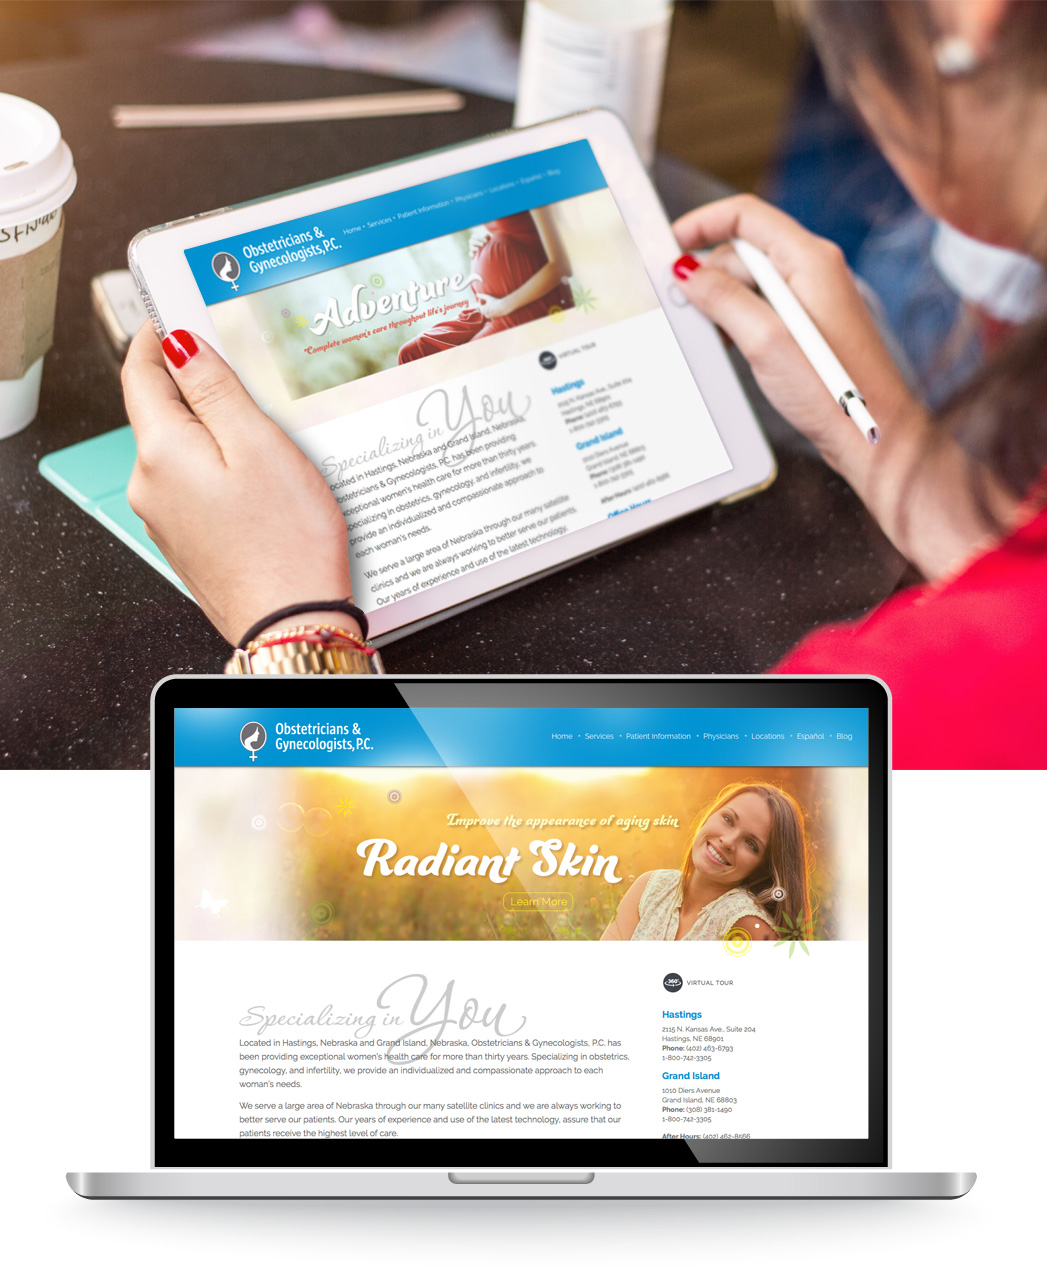 Obstetricians & Gynecologists website design